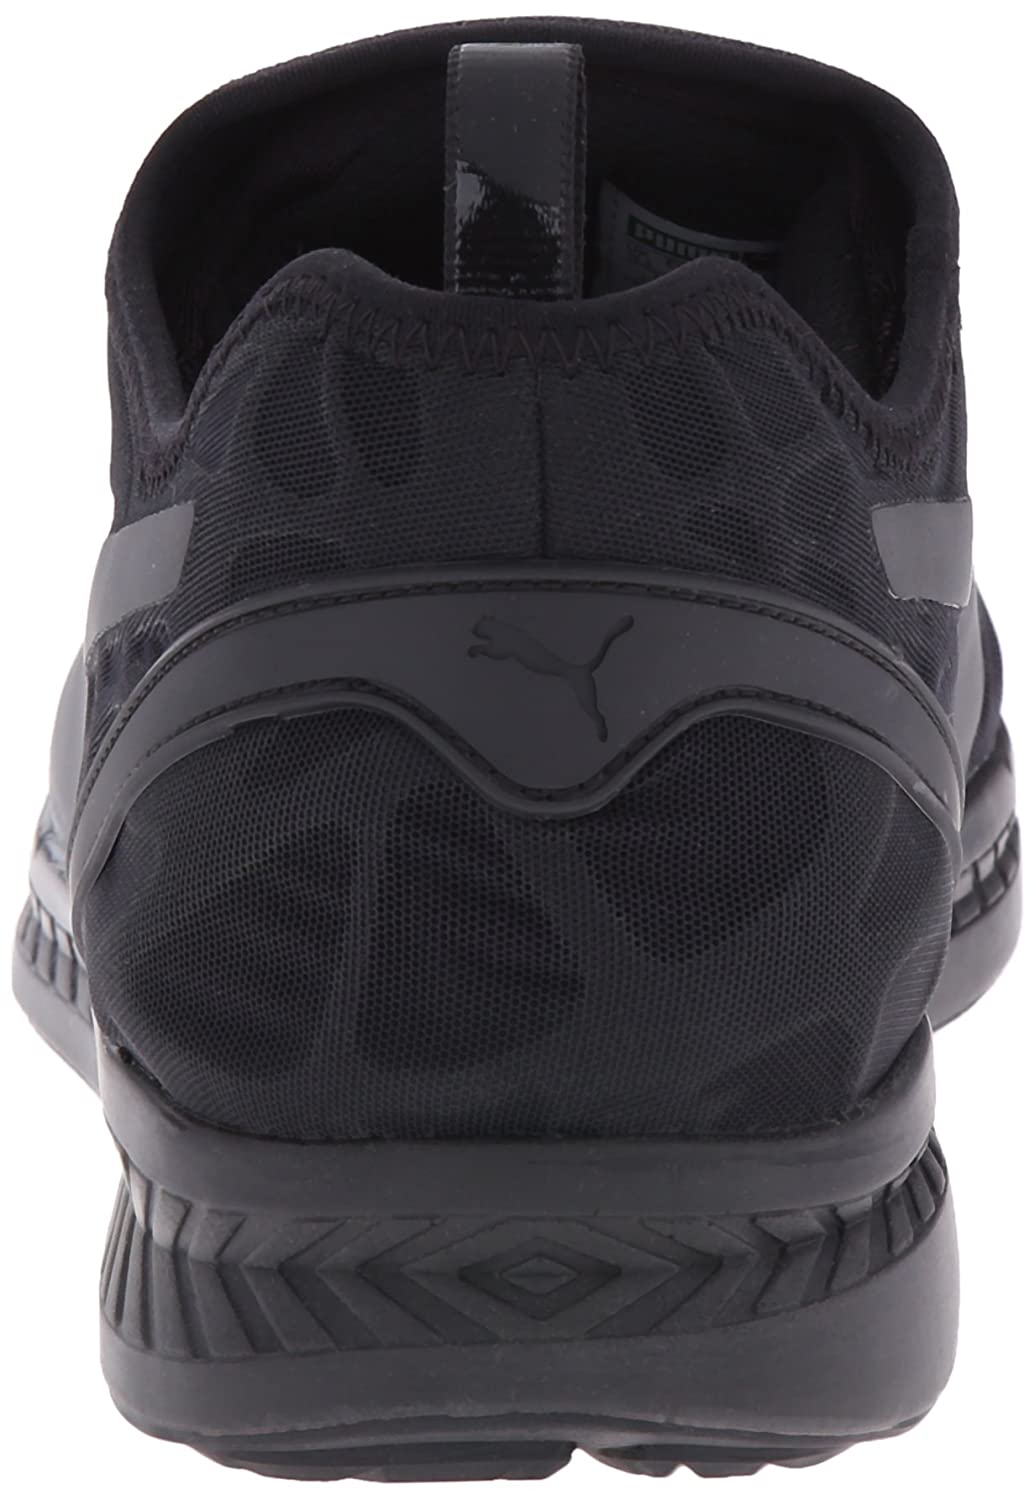 2495bf013c7 PUMA Men s disc Sleeve Ignite Foam-m Black  Puma  Amazon.ca  Shoes    Handbags